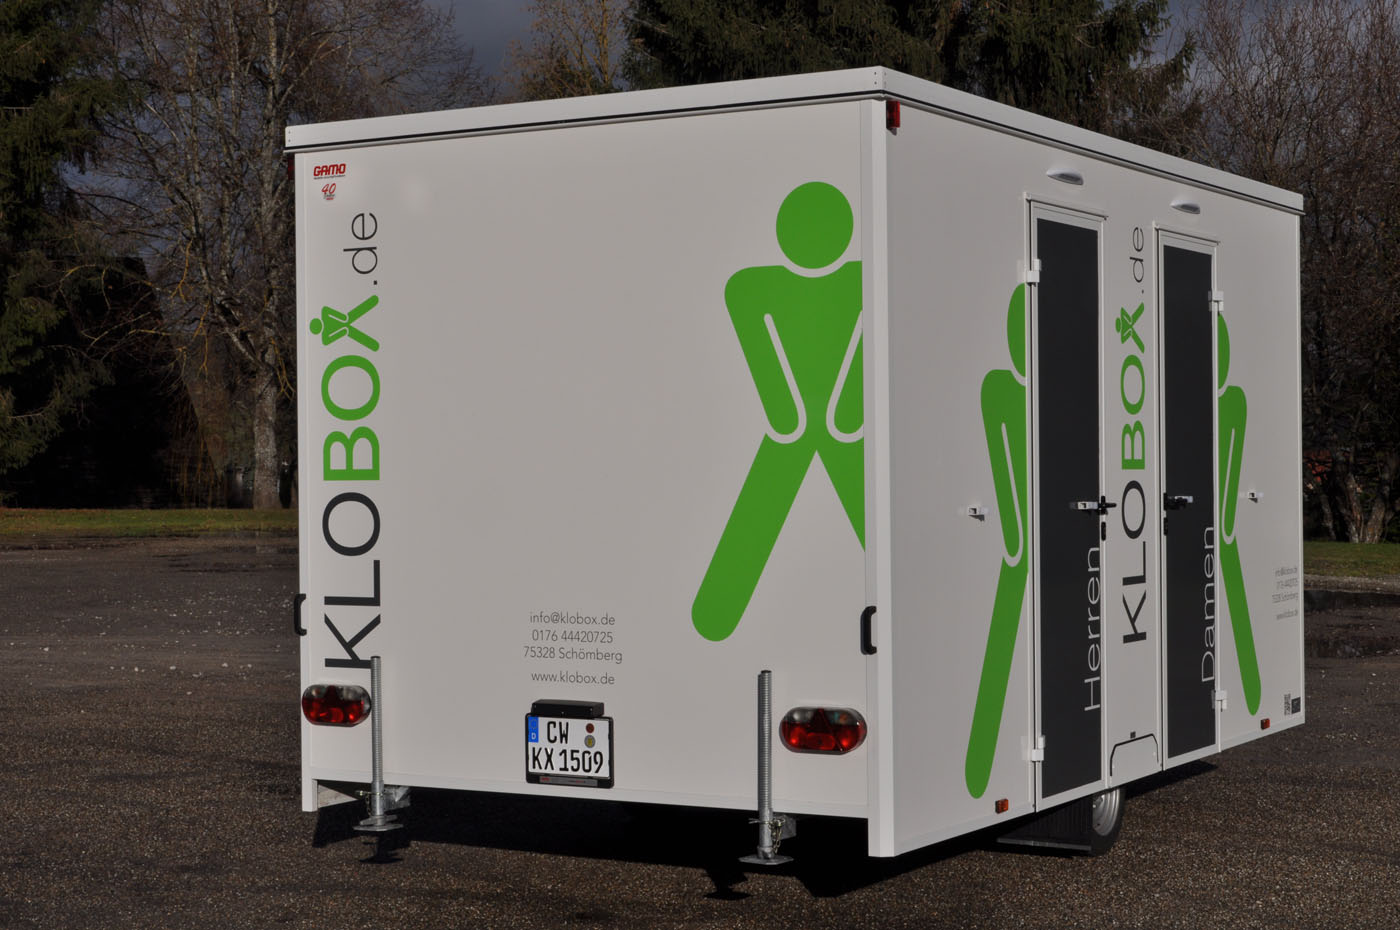 Toilettenwagen - klobox.de #04